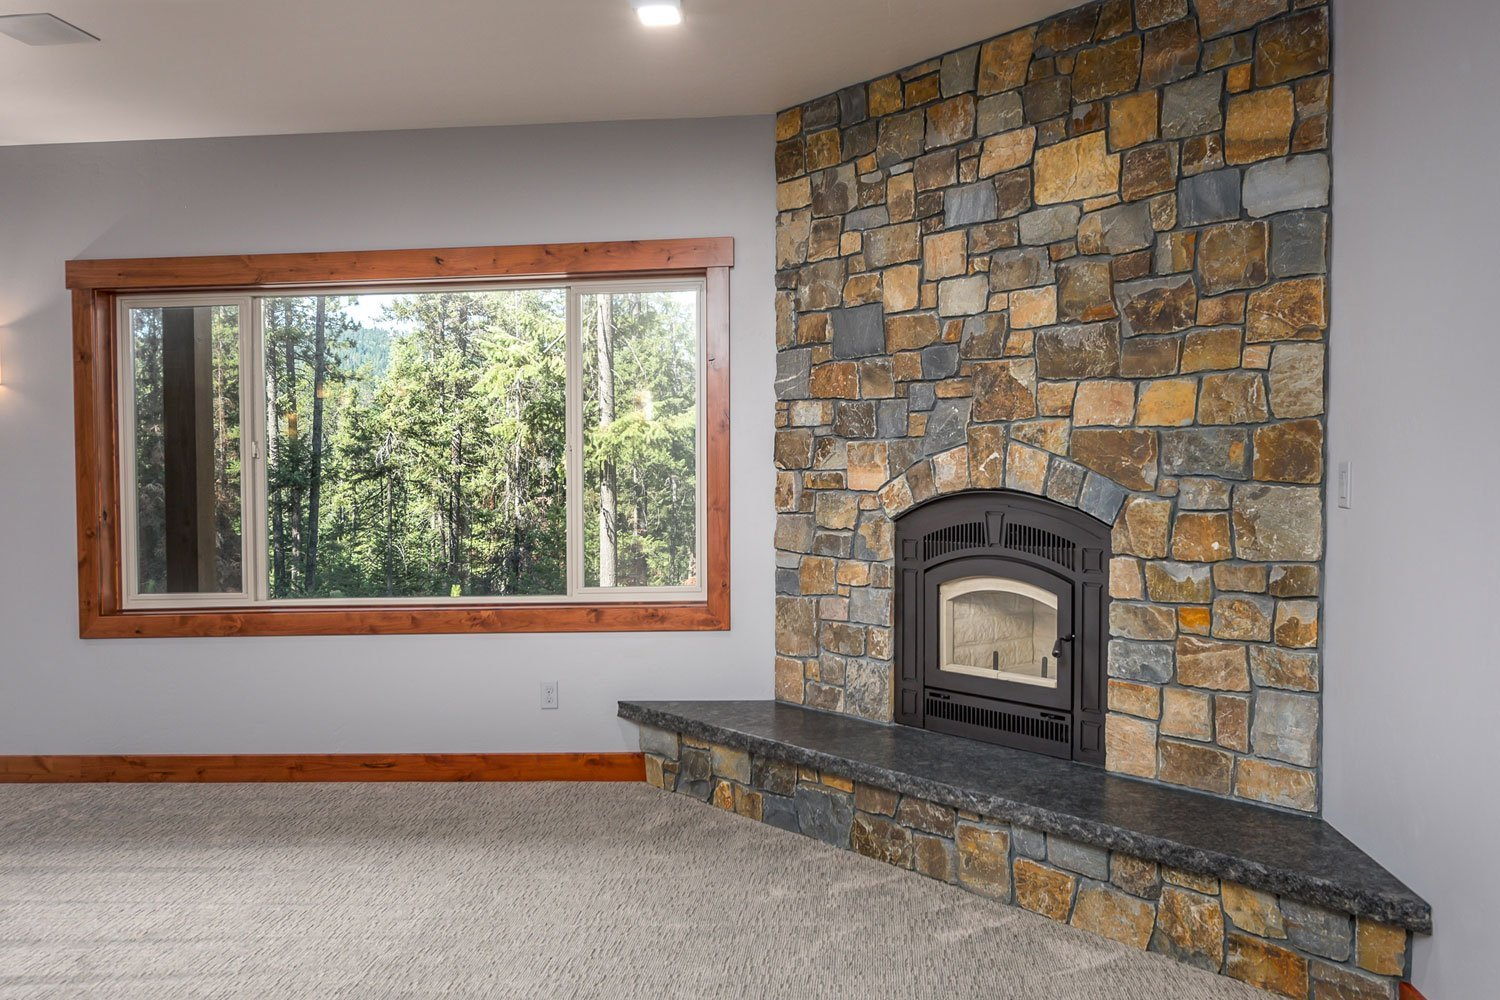 bane-built-meadowbrook-family-room-fireplace-3091